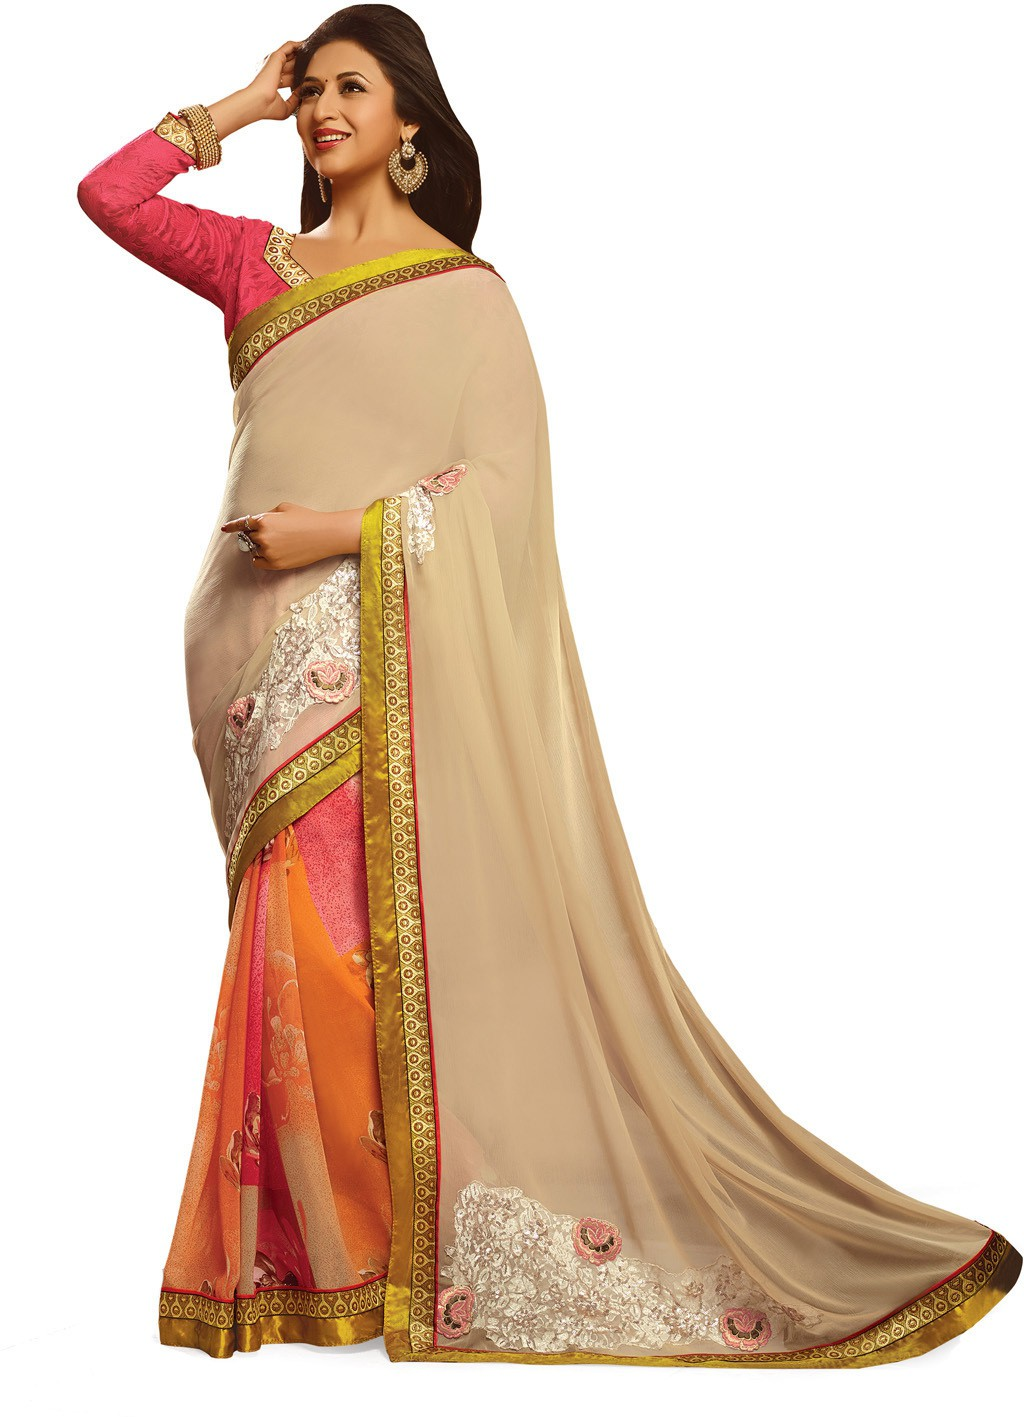 Indianbeauty Self Design, Embroidered Bollywood Pure Georgette Saree(Beige, Orange)